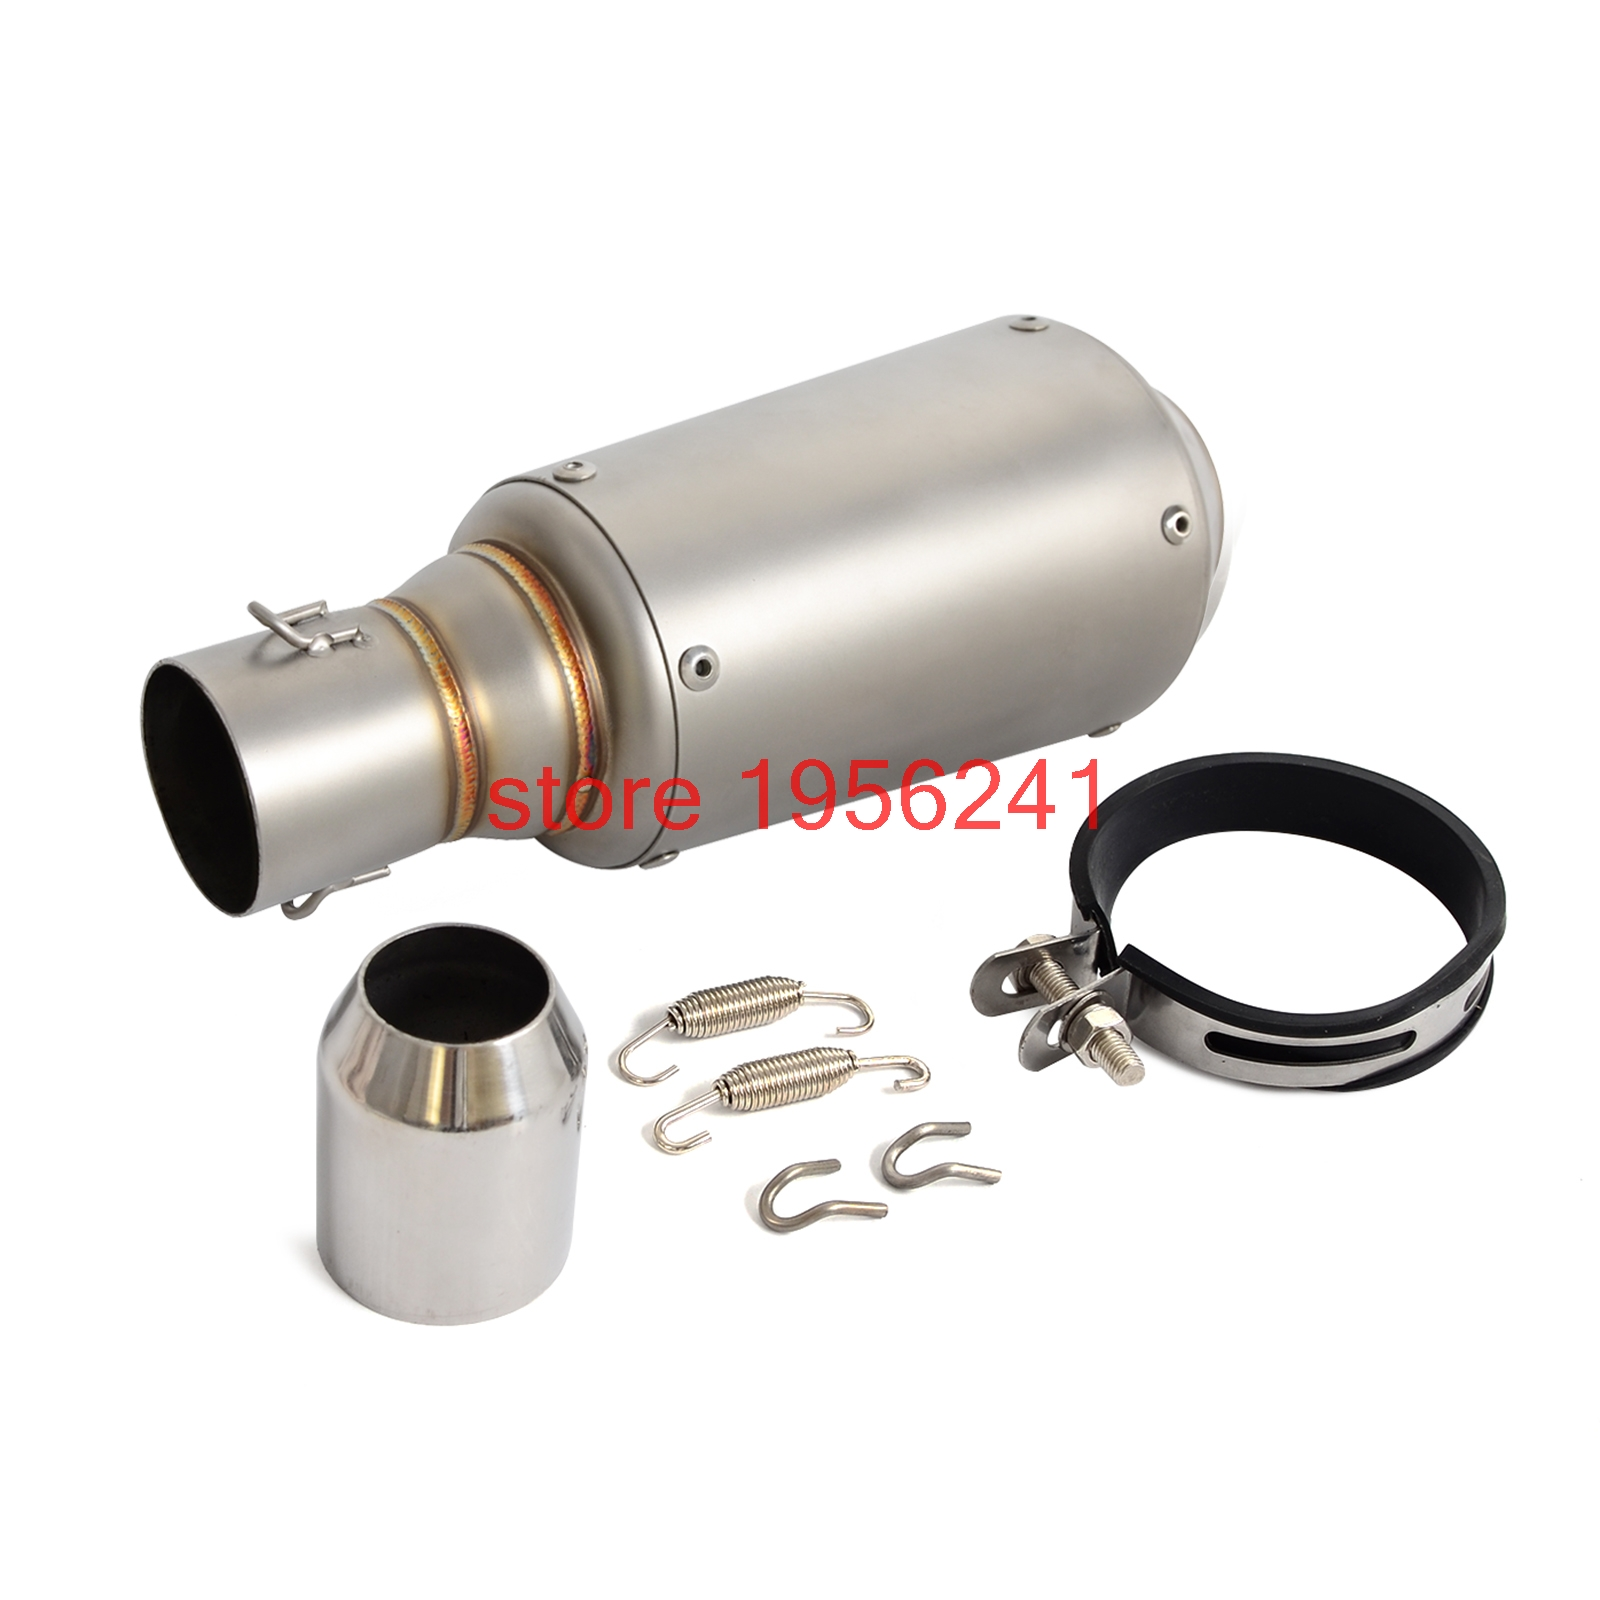 Motorcycle GP Exhaust Muffler 38mm - 51mm Clip-on For Dirt Bike Street Bike Scooter ATV Quad